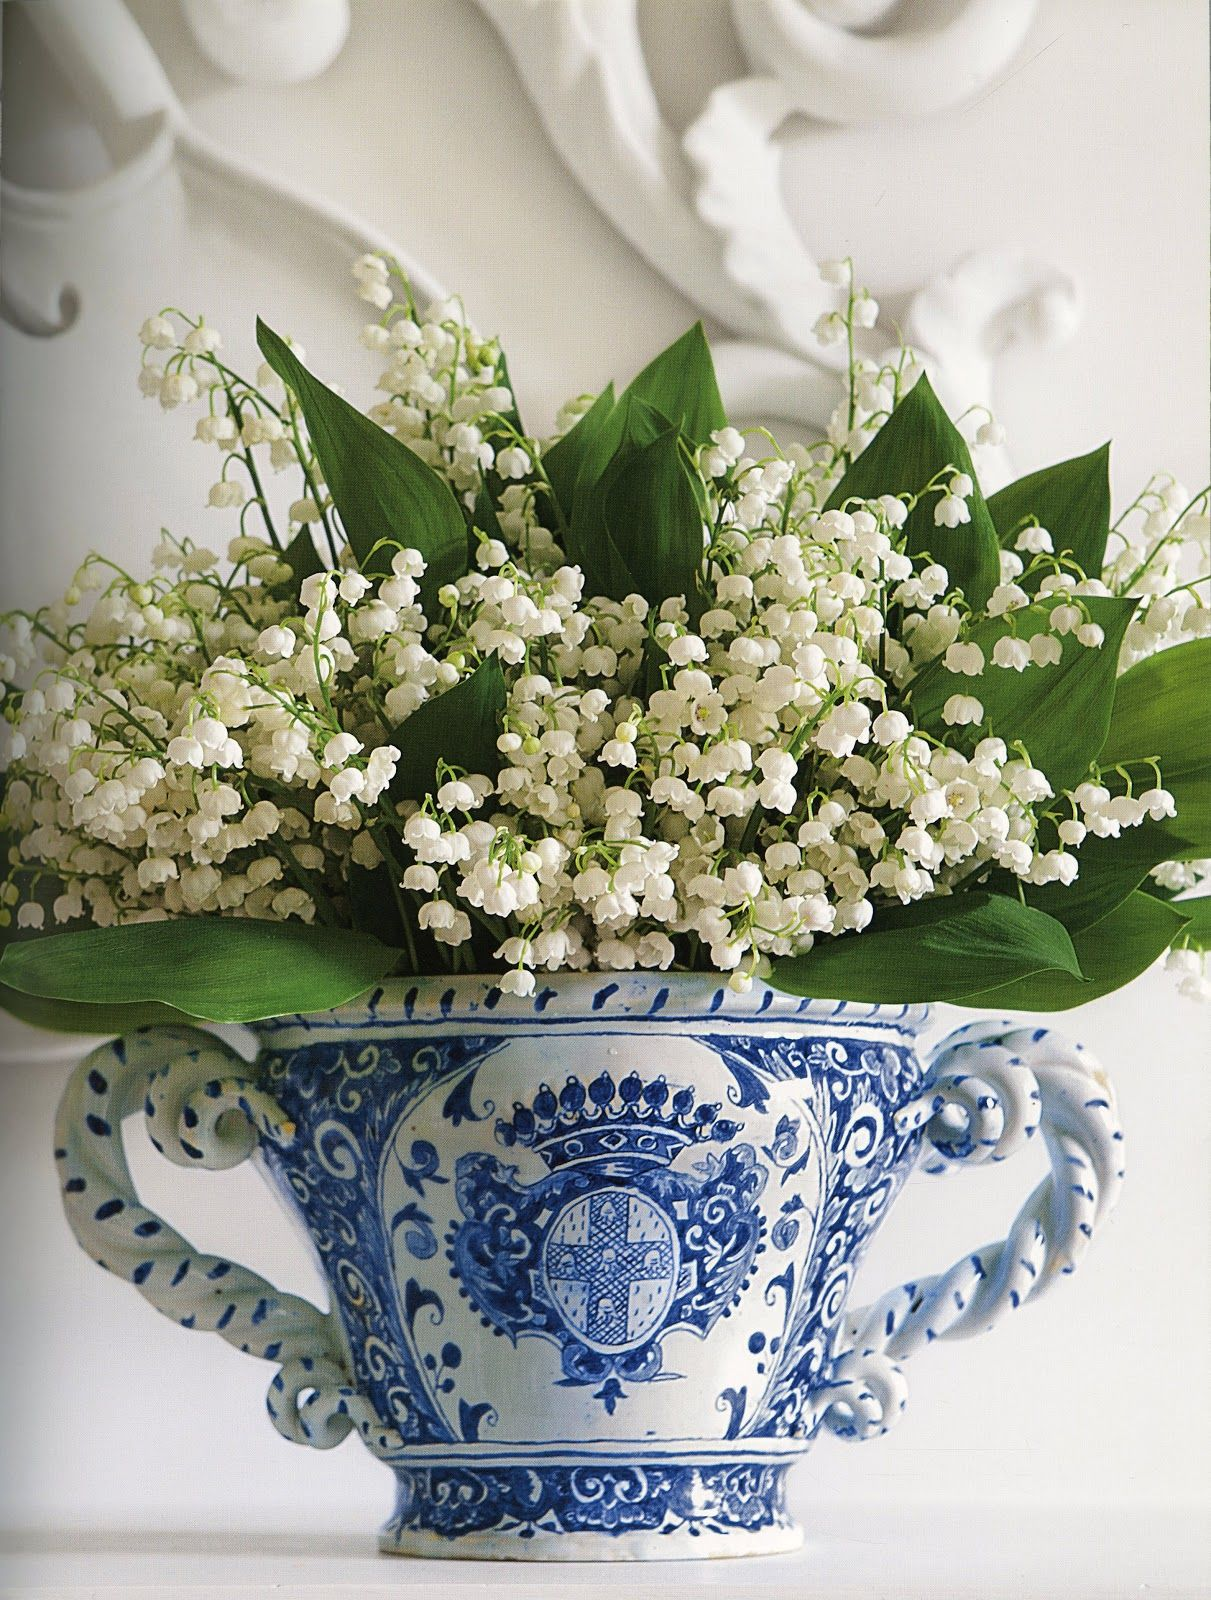 Lily of the valley from flowers by carolyne roehm my birth month lily of the valley from flowers by carolyne roehm my birth month mays flower so pretty and it smells heavenly izmirmasajfo